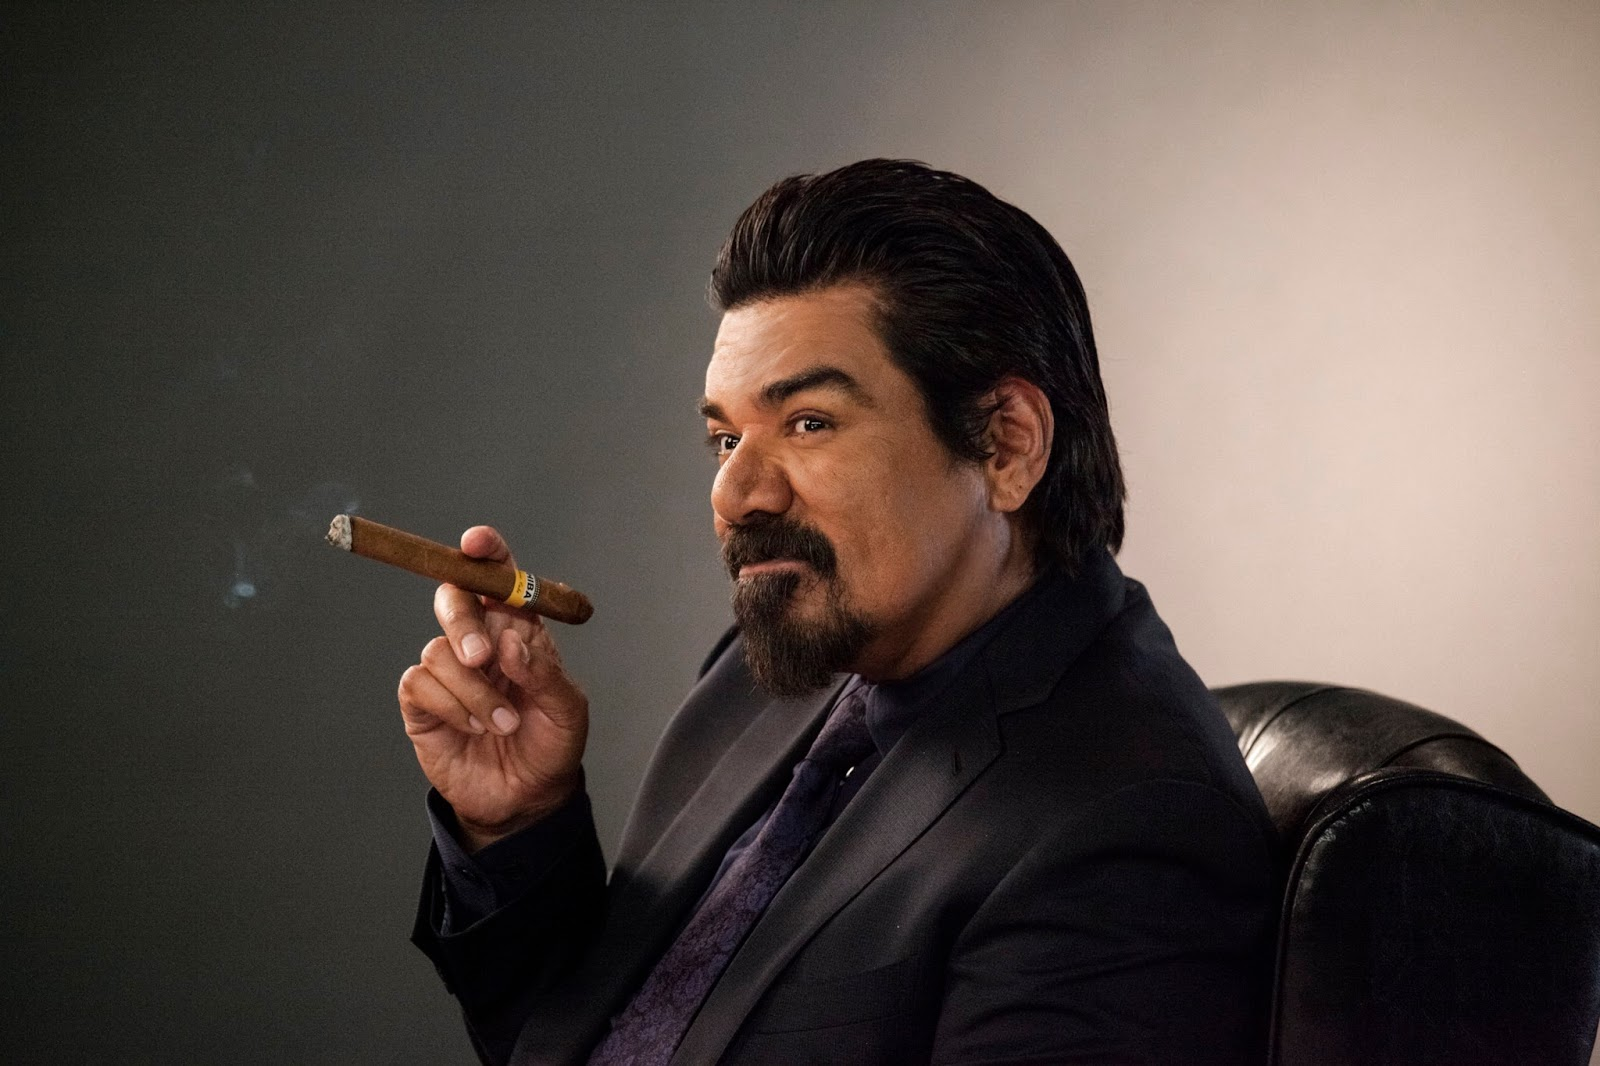 the george lopez show George lopez's multi-faceted career encompasses television, film, standup comedy and late-night television.